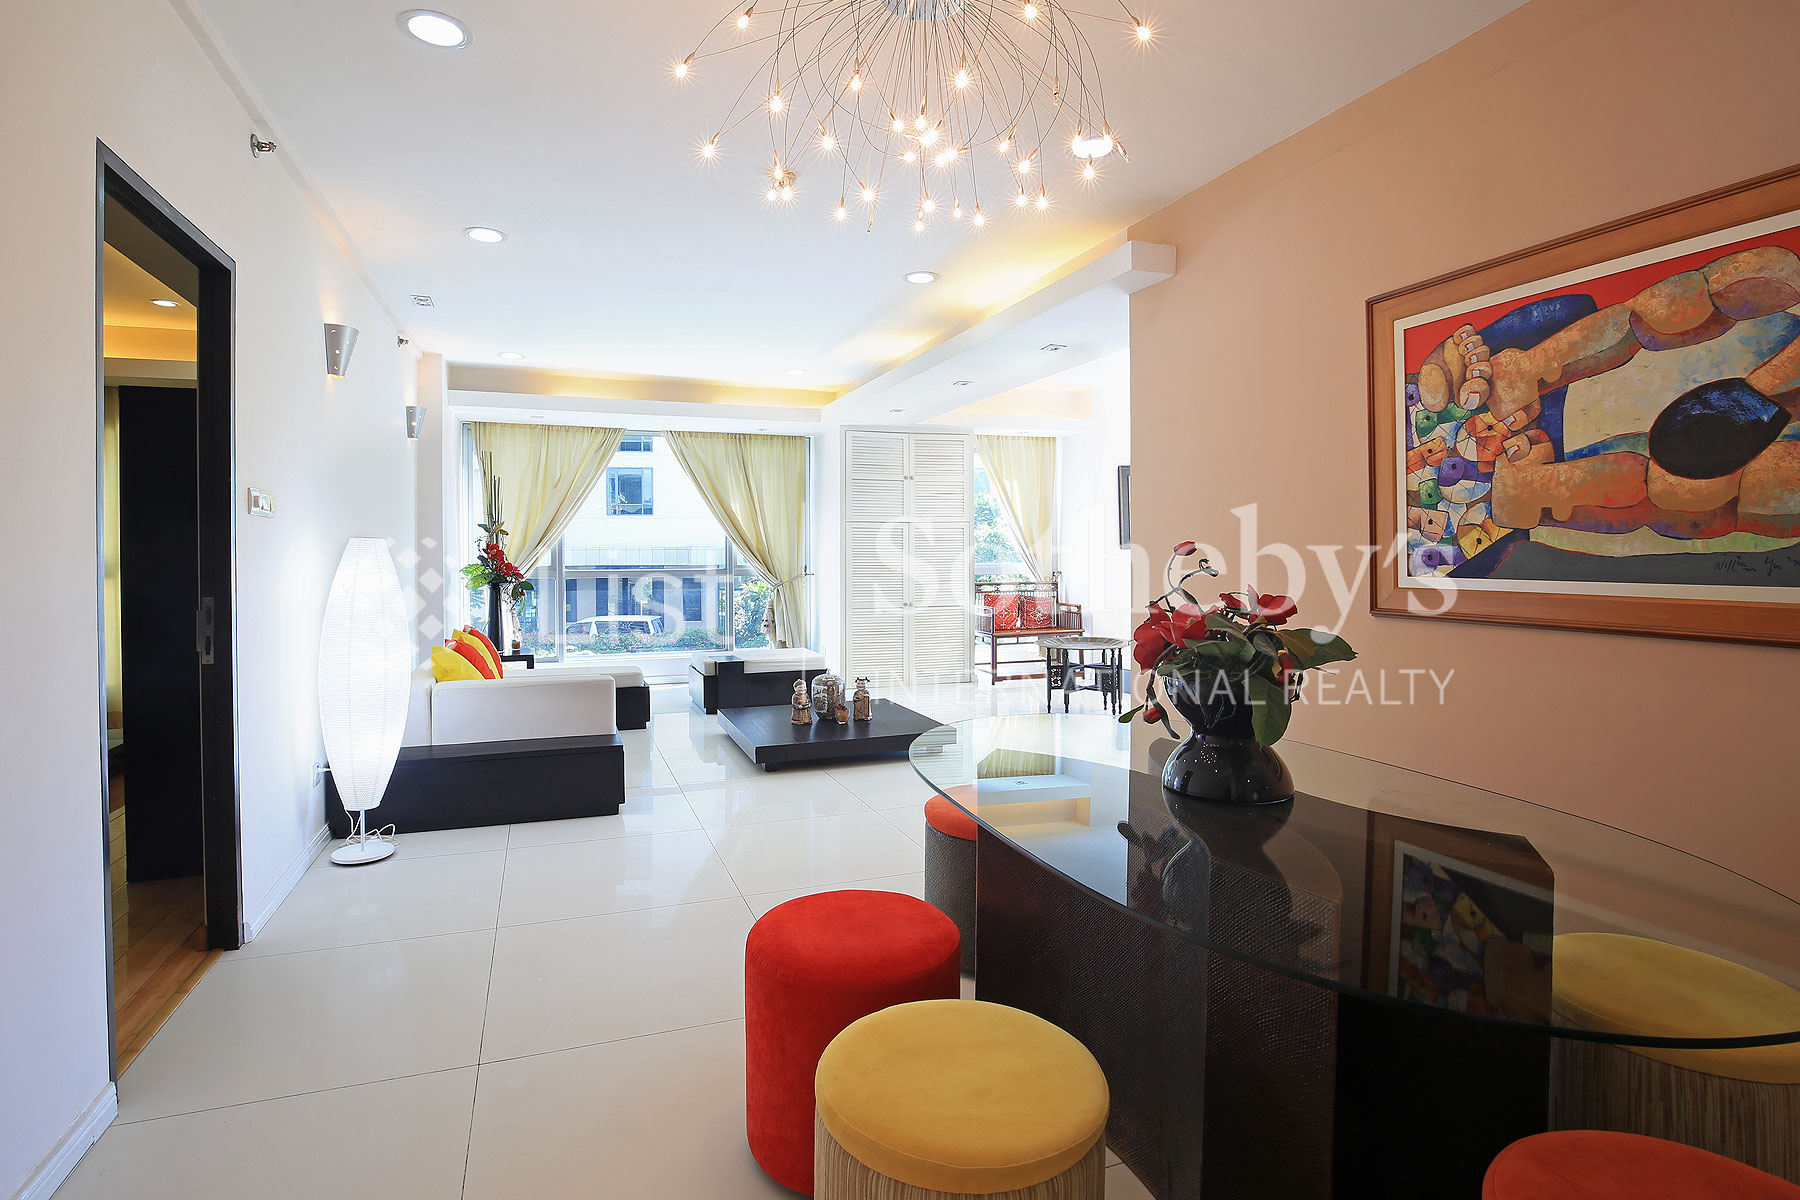 Additional photo for property listing at 2 Bedroom Contemporary Unit in BGC Kensington Place Condominum First Ave, Fort Bonifacio Global City Taguig City, Philippines 1634 Philippines